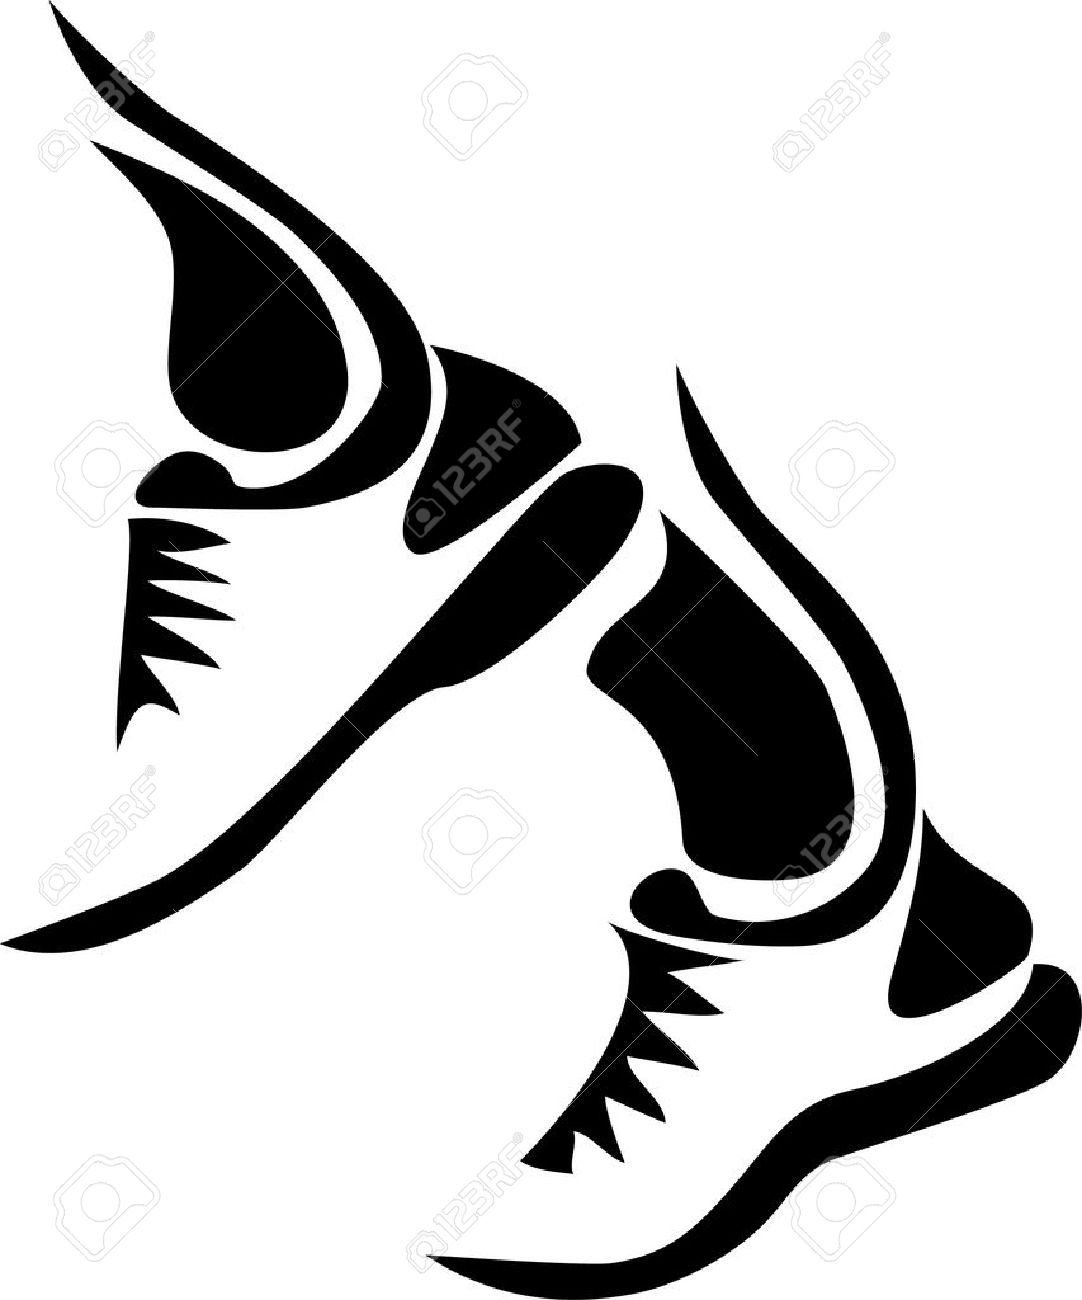 stylized running shoes royalty free cliparts vectors and stock rh 123rf com running shoe silhouette vector running shoe vector icon